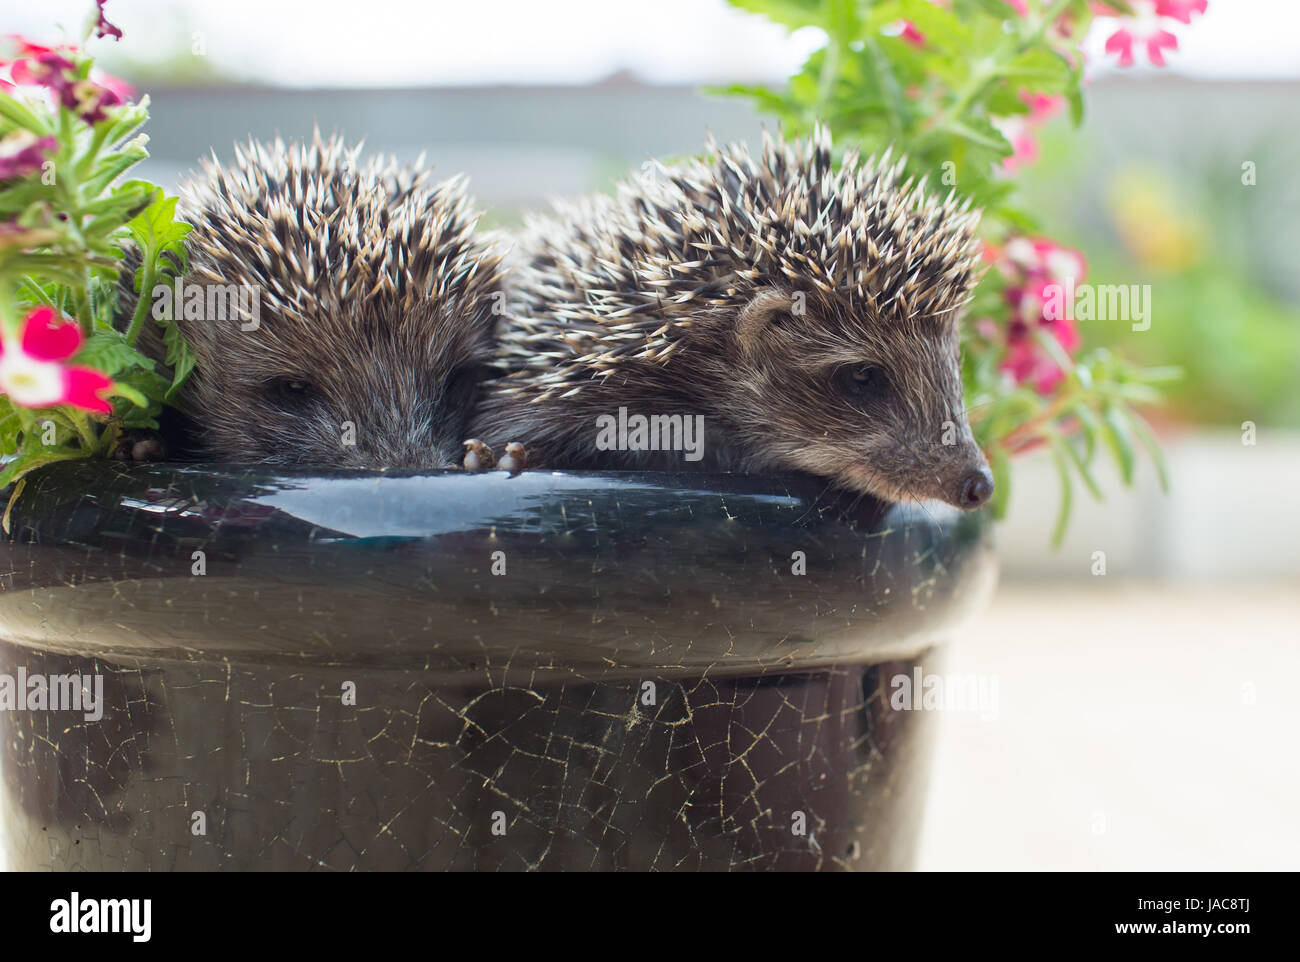 Two little Hedgehog in the pot with flowers - Stock Image